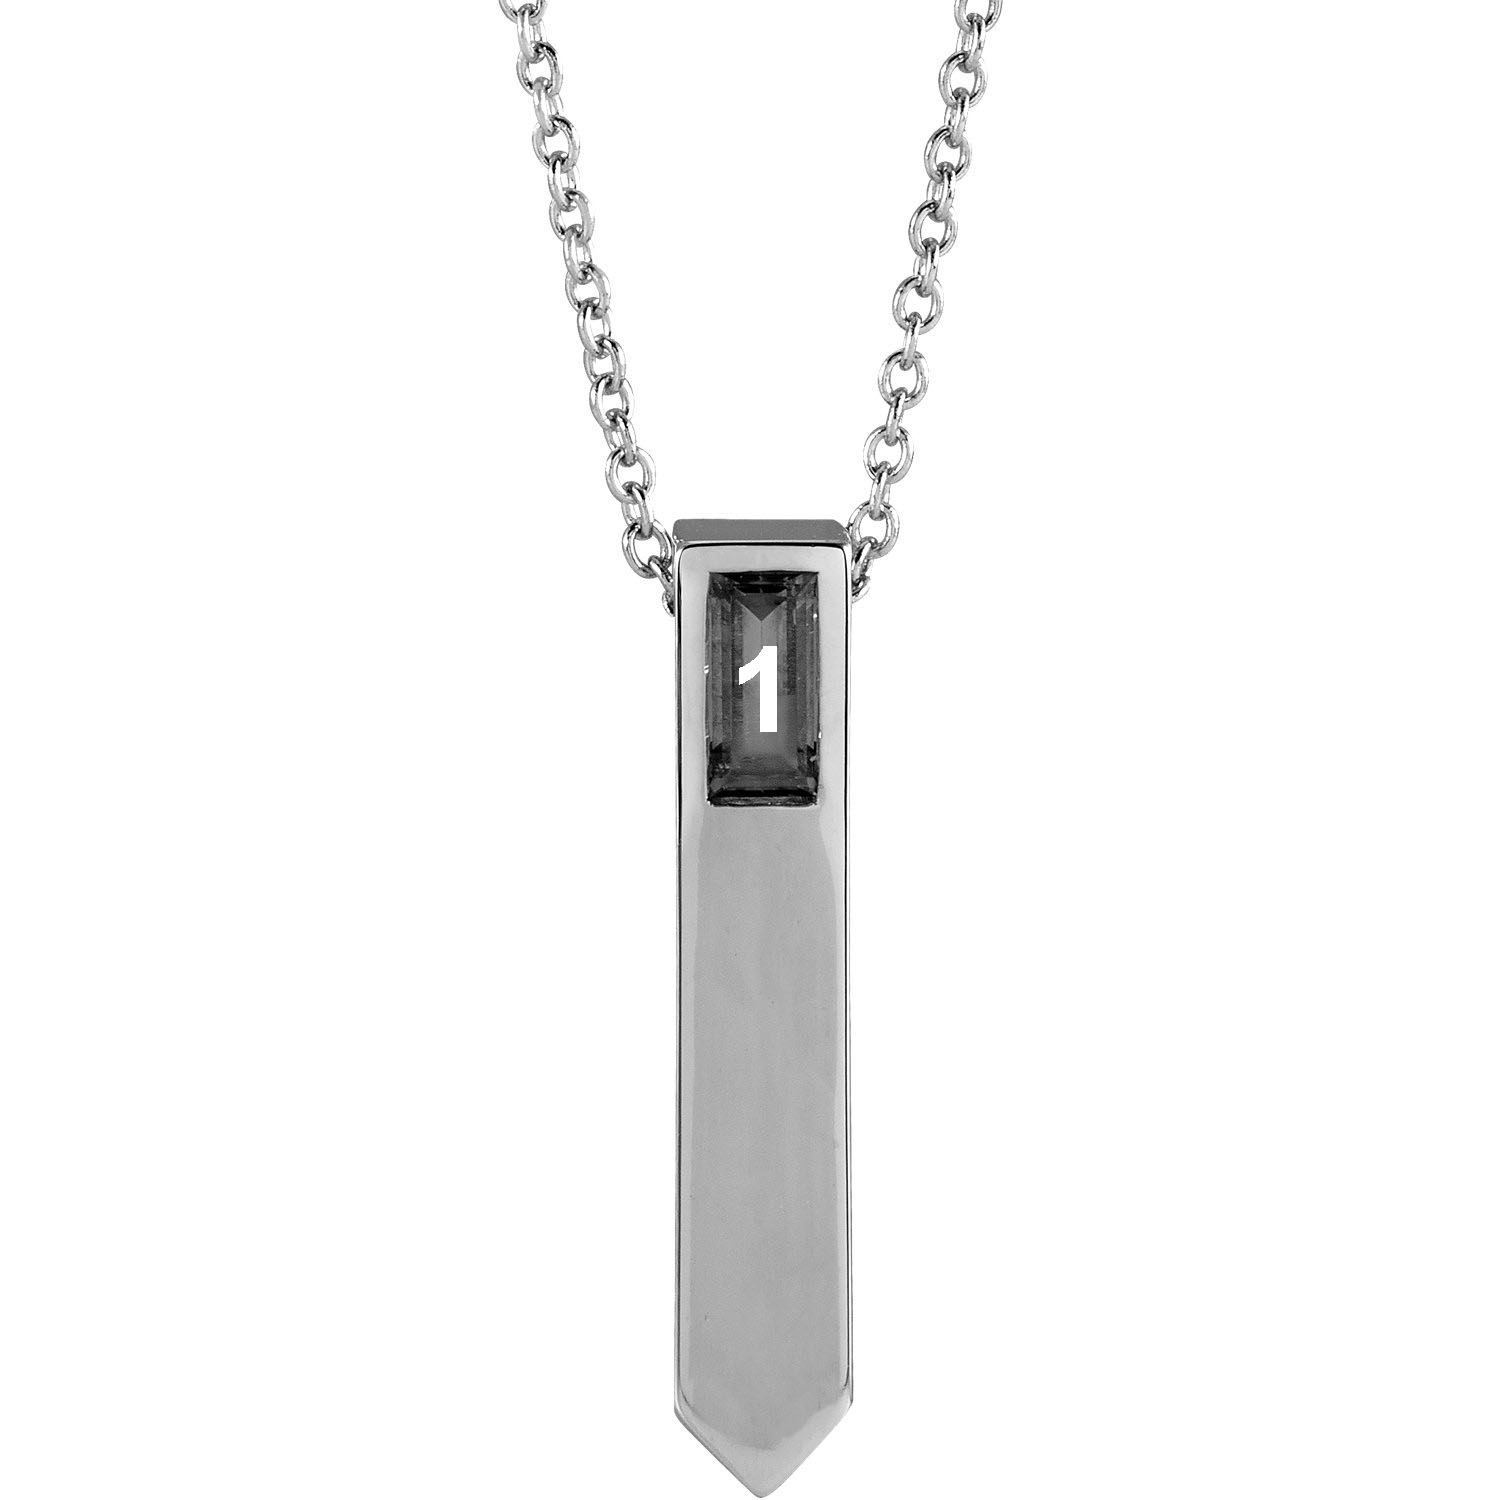 Picture of Family Geometric Necklace Silver 1 to 5 Stones